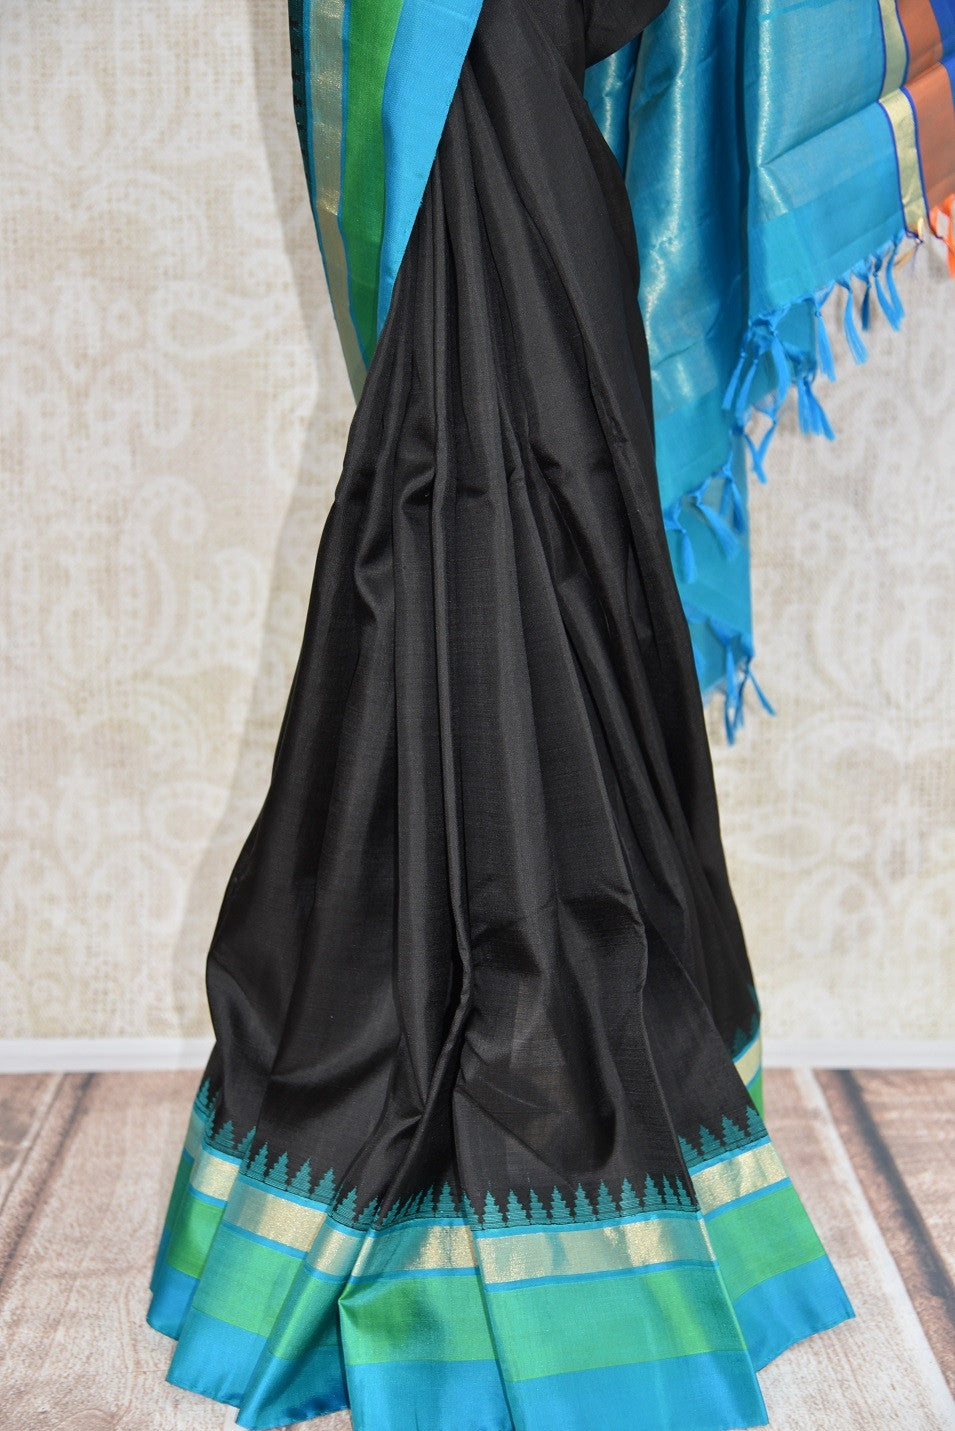 90C585 Black Kanjivaram Saree With Hues of Blue & Purple